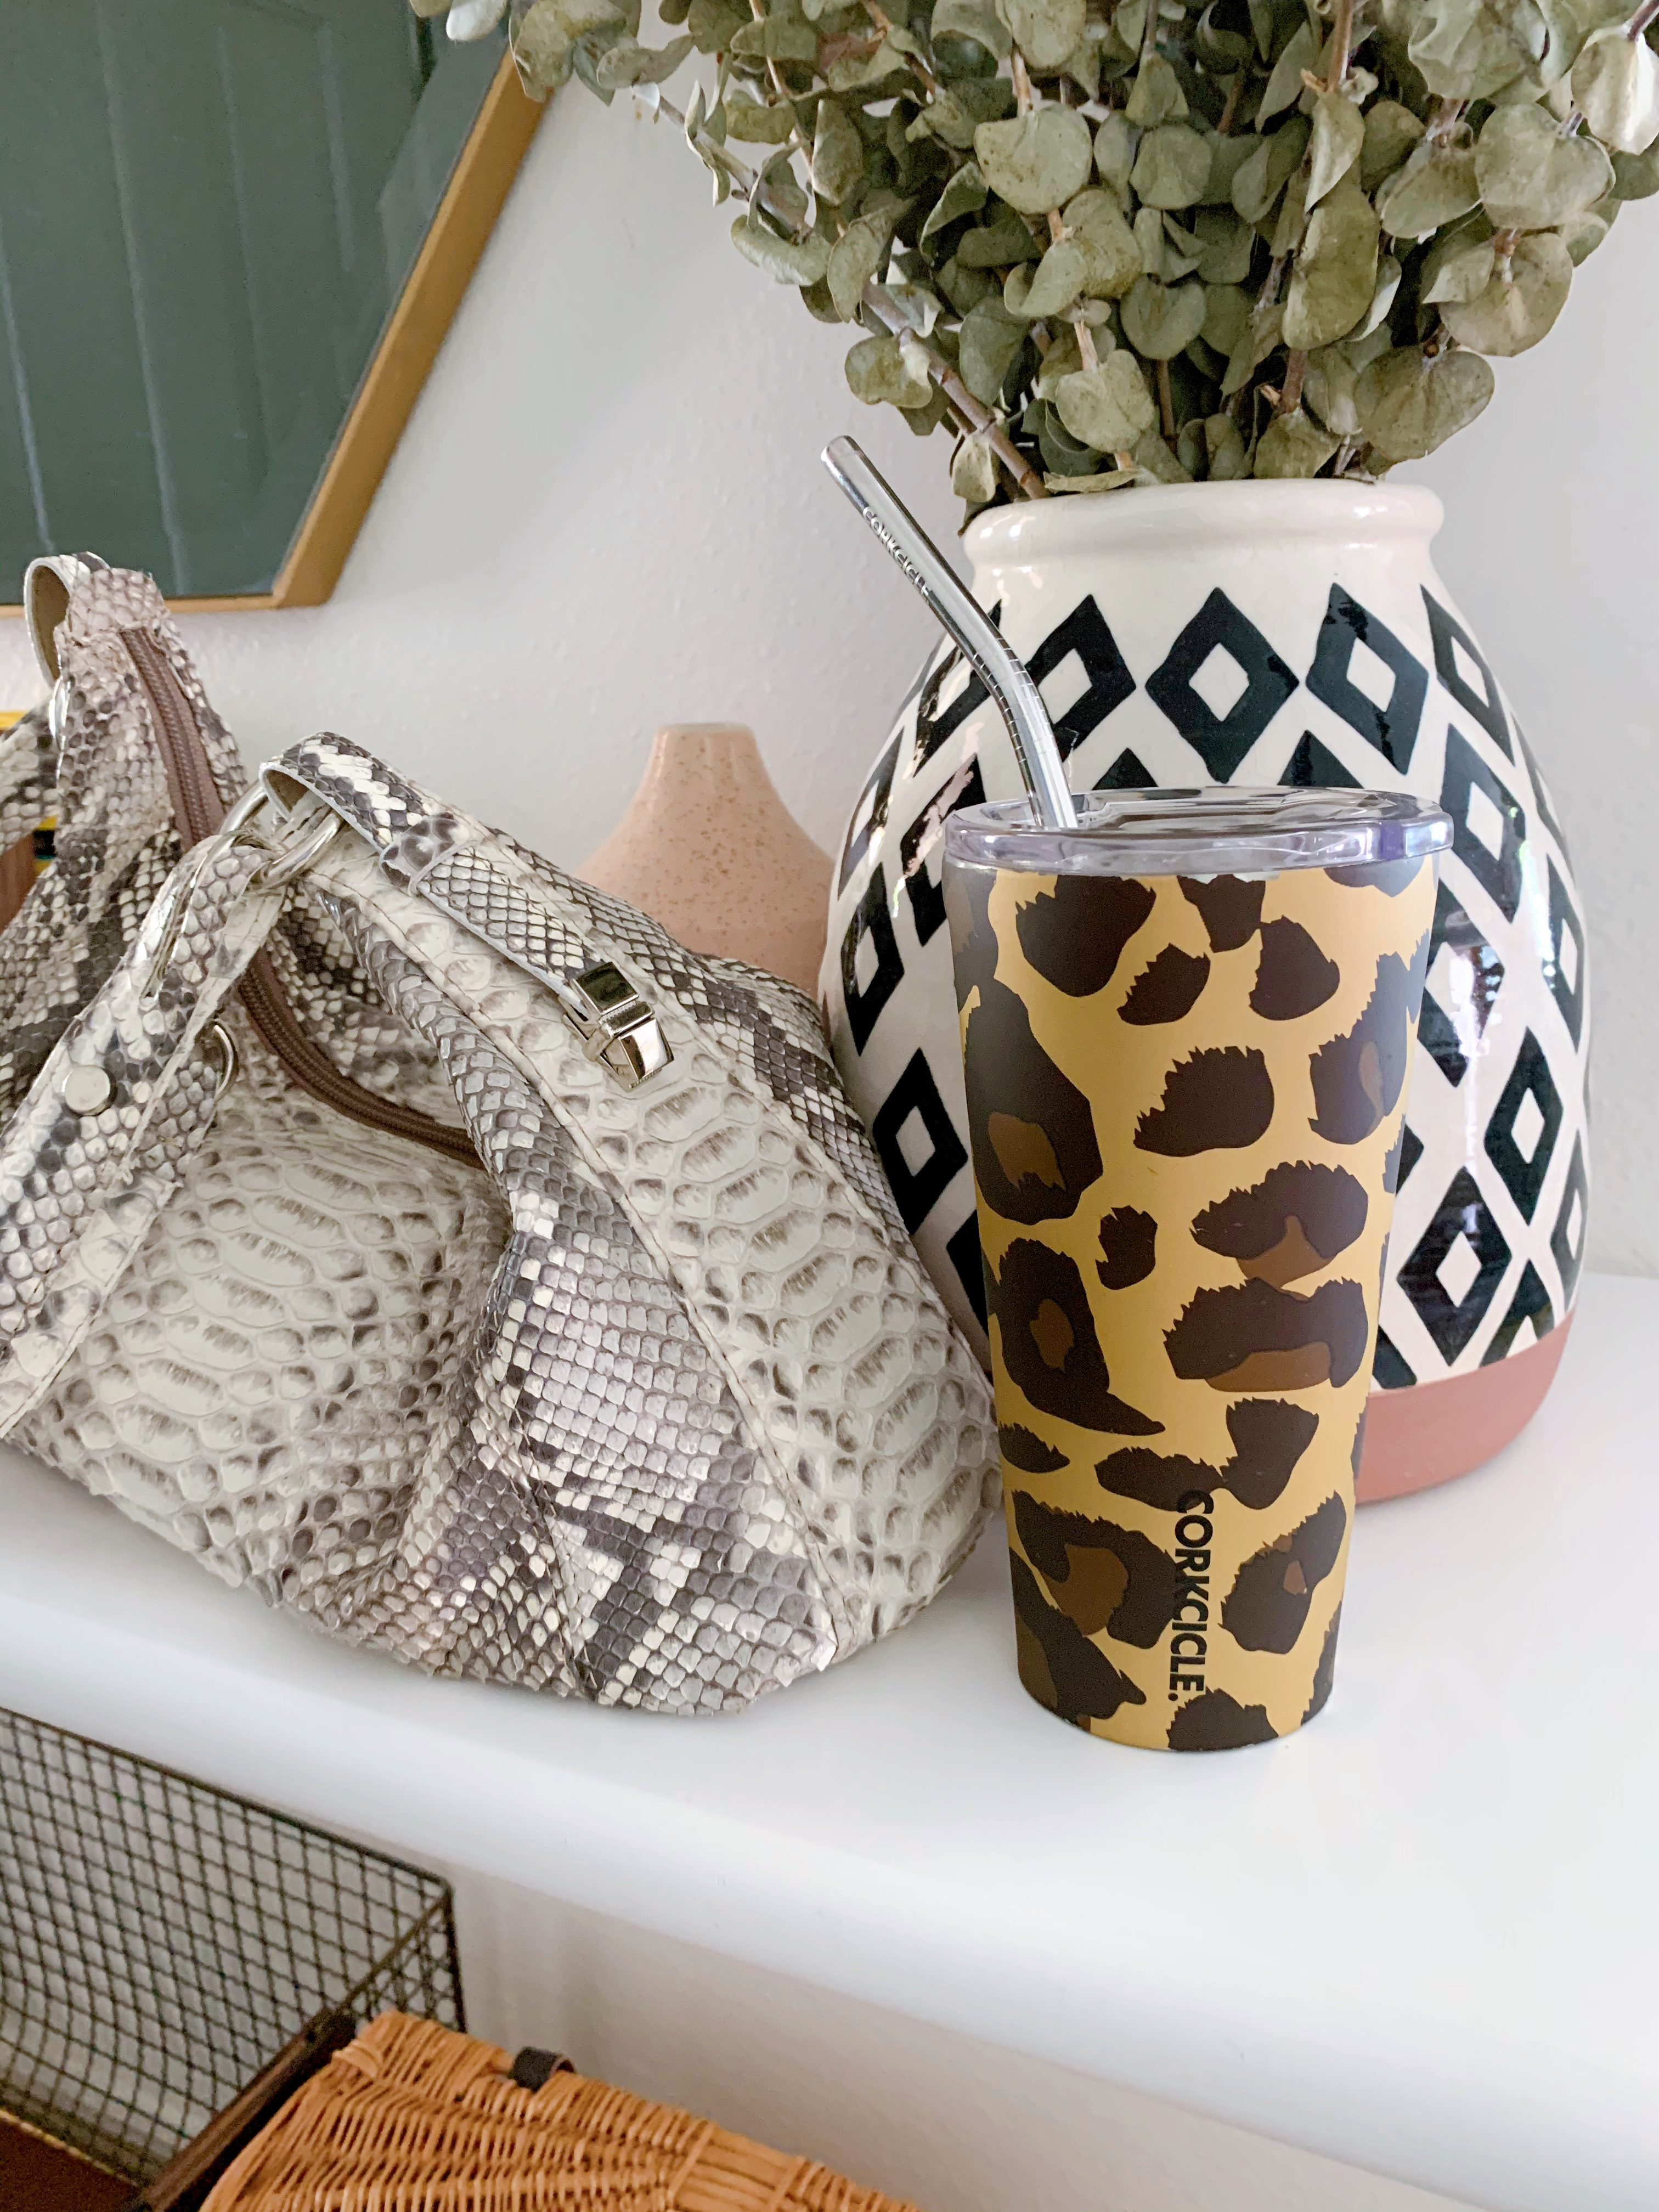 Easy iced coffee recipe in a leopard Corkcicle tumbler